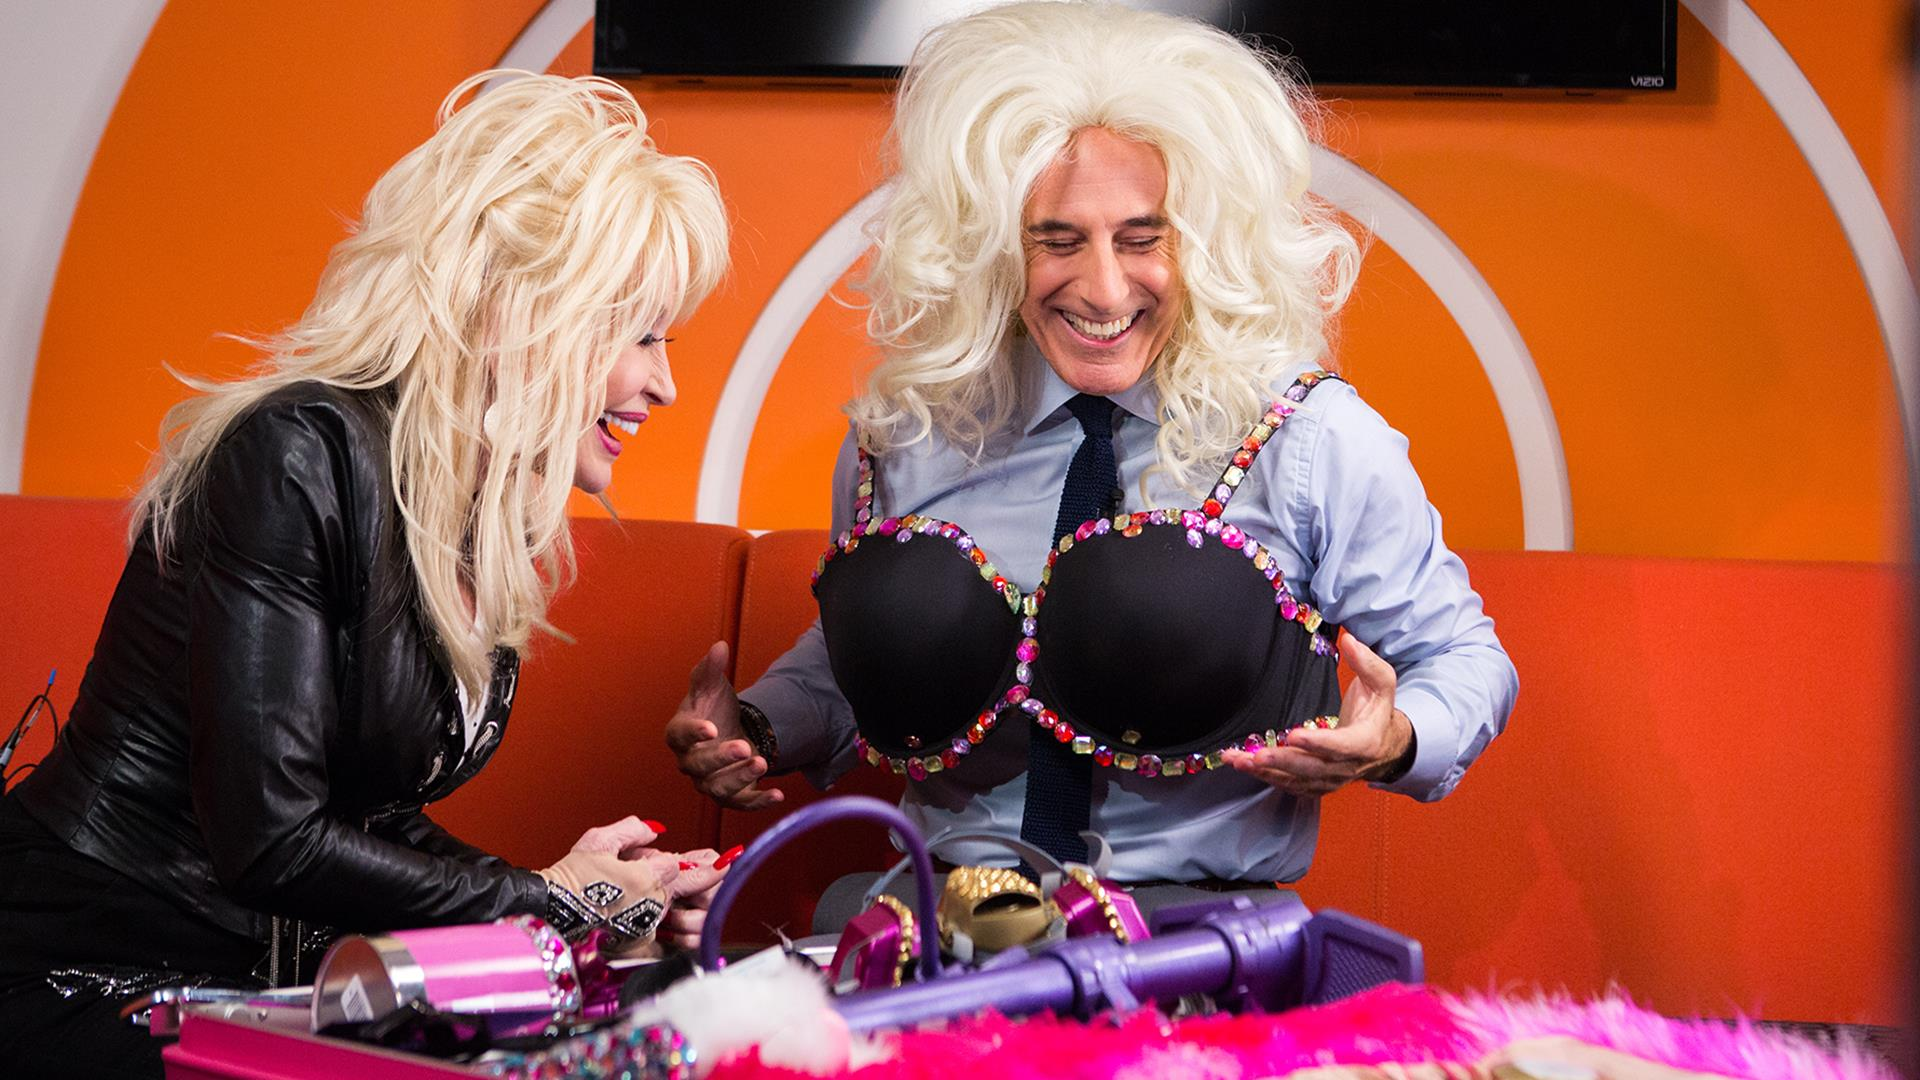 Dolly Parton Teaches Matt Lauer How To Dress As Her For